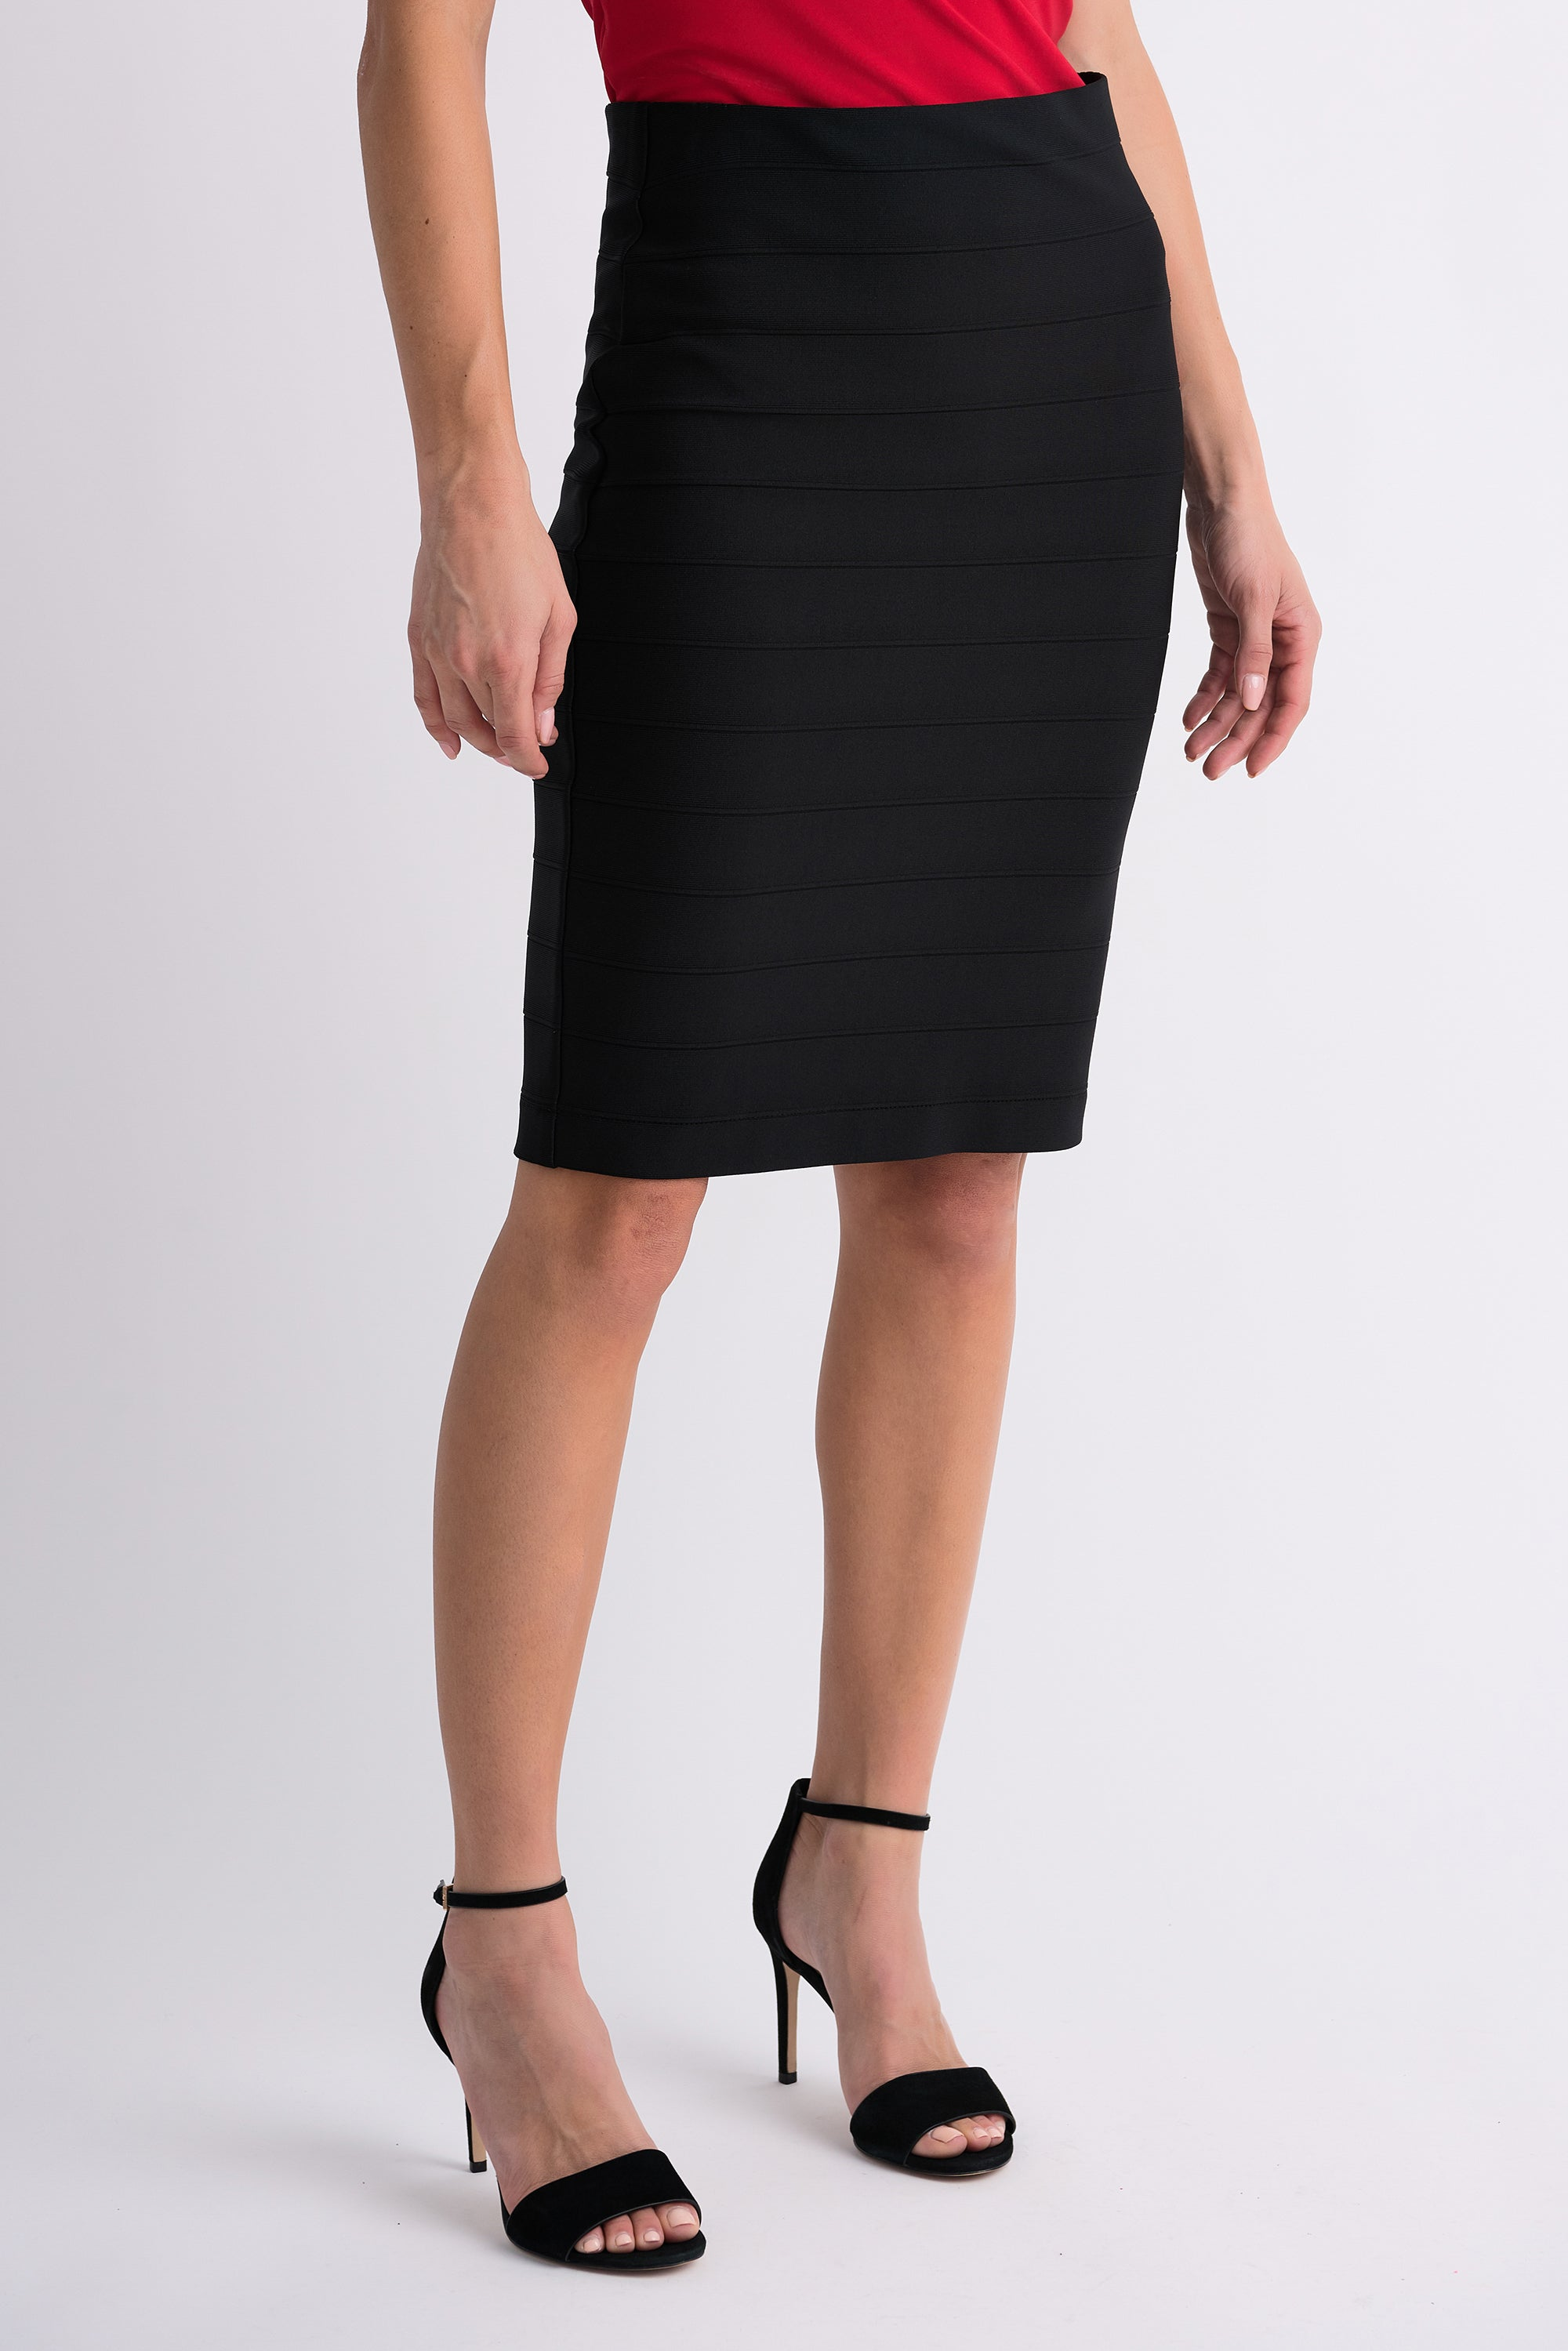 Joseph Ribkoff Pencil Skirt